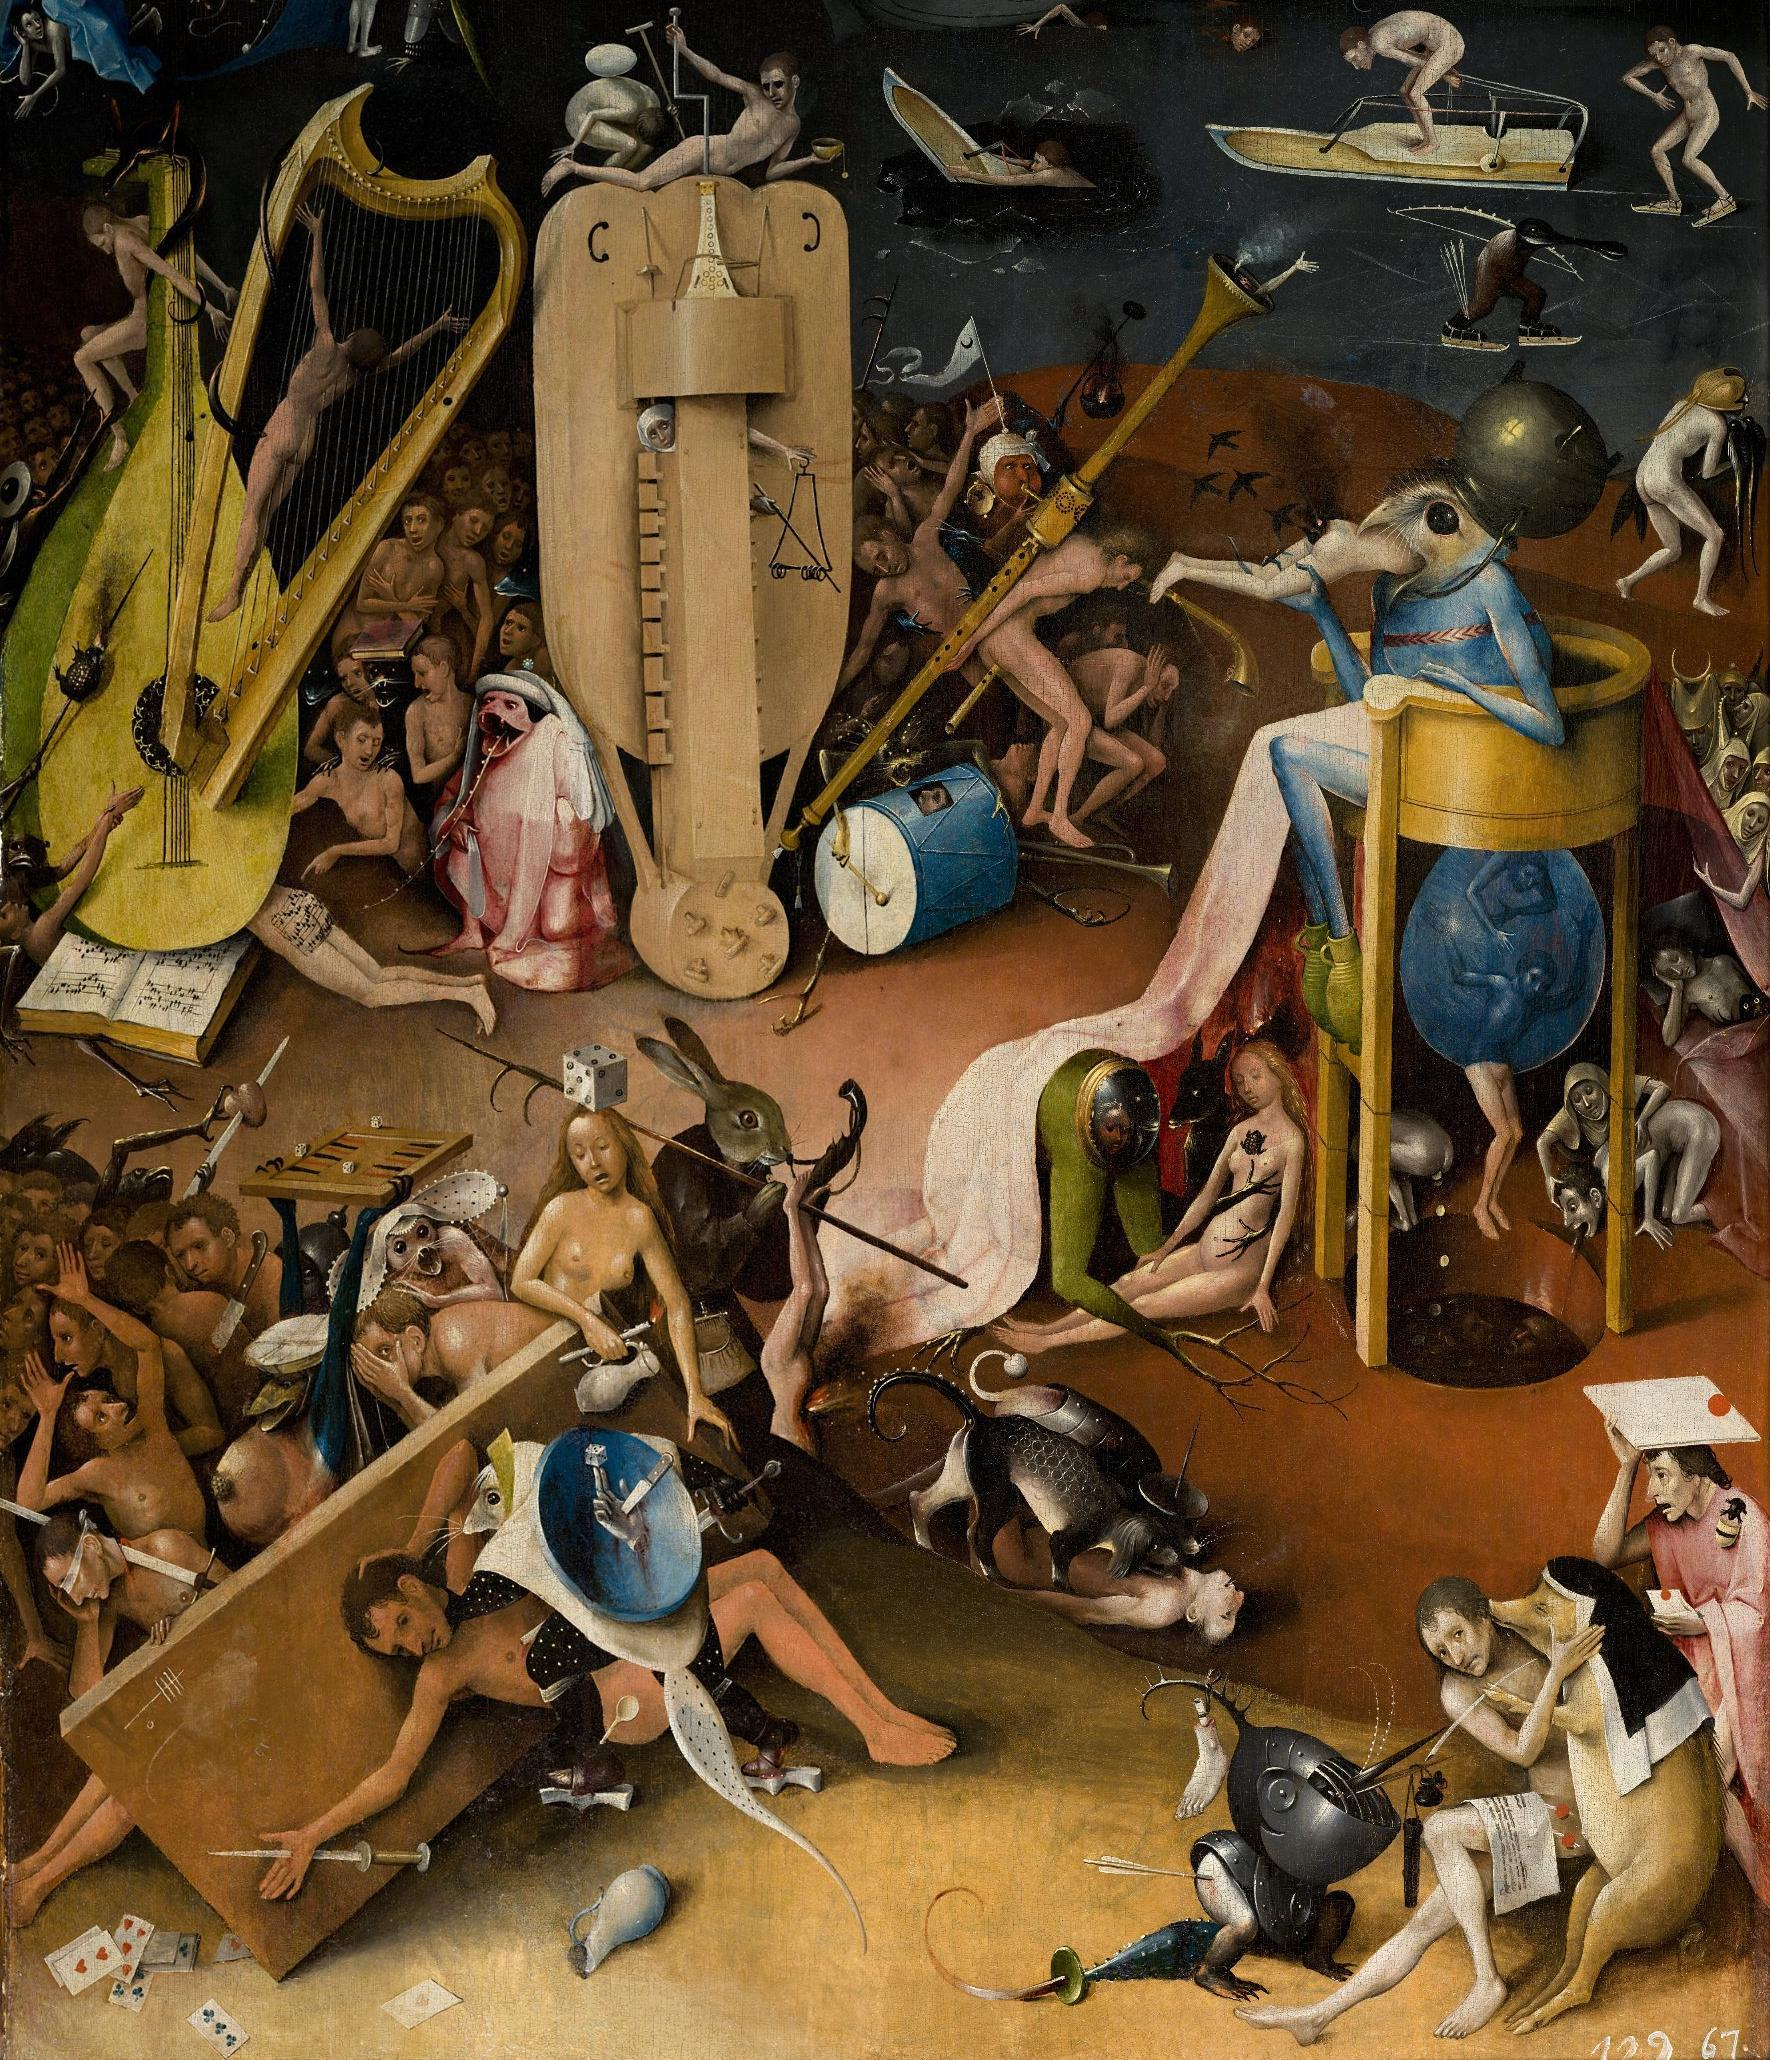 Painting of a bizarre landscape filled with enormous instruments and scenes of human-sized animals and nude people engaging in sexual and violent acts.